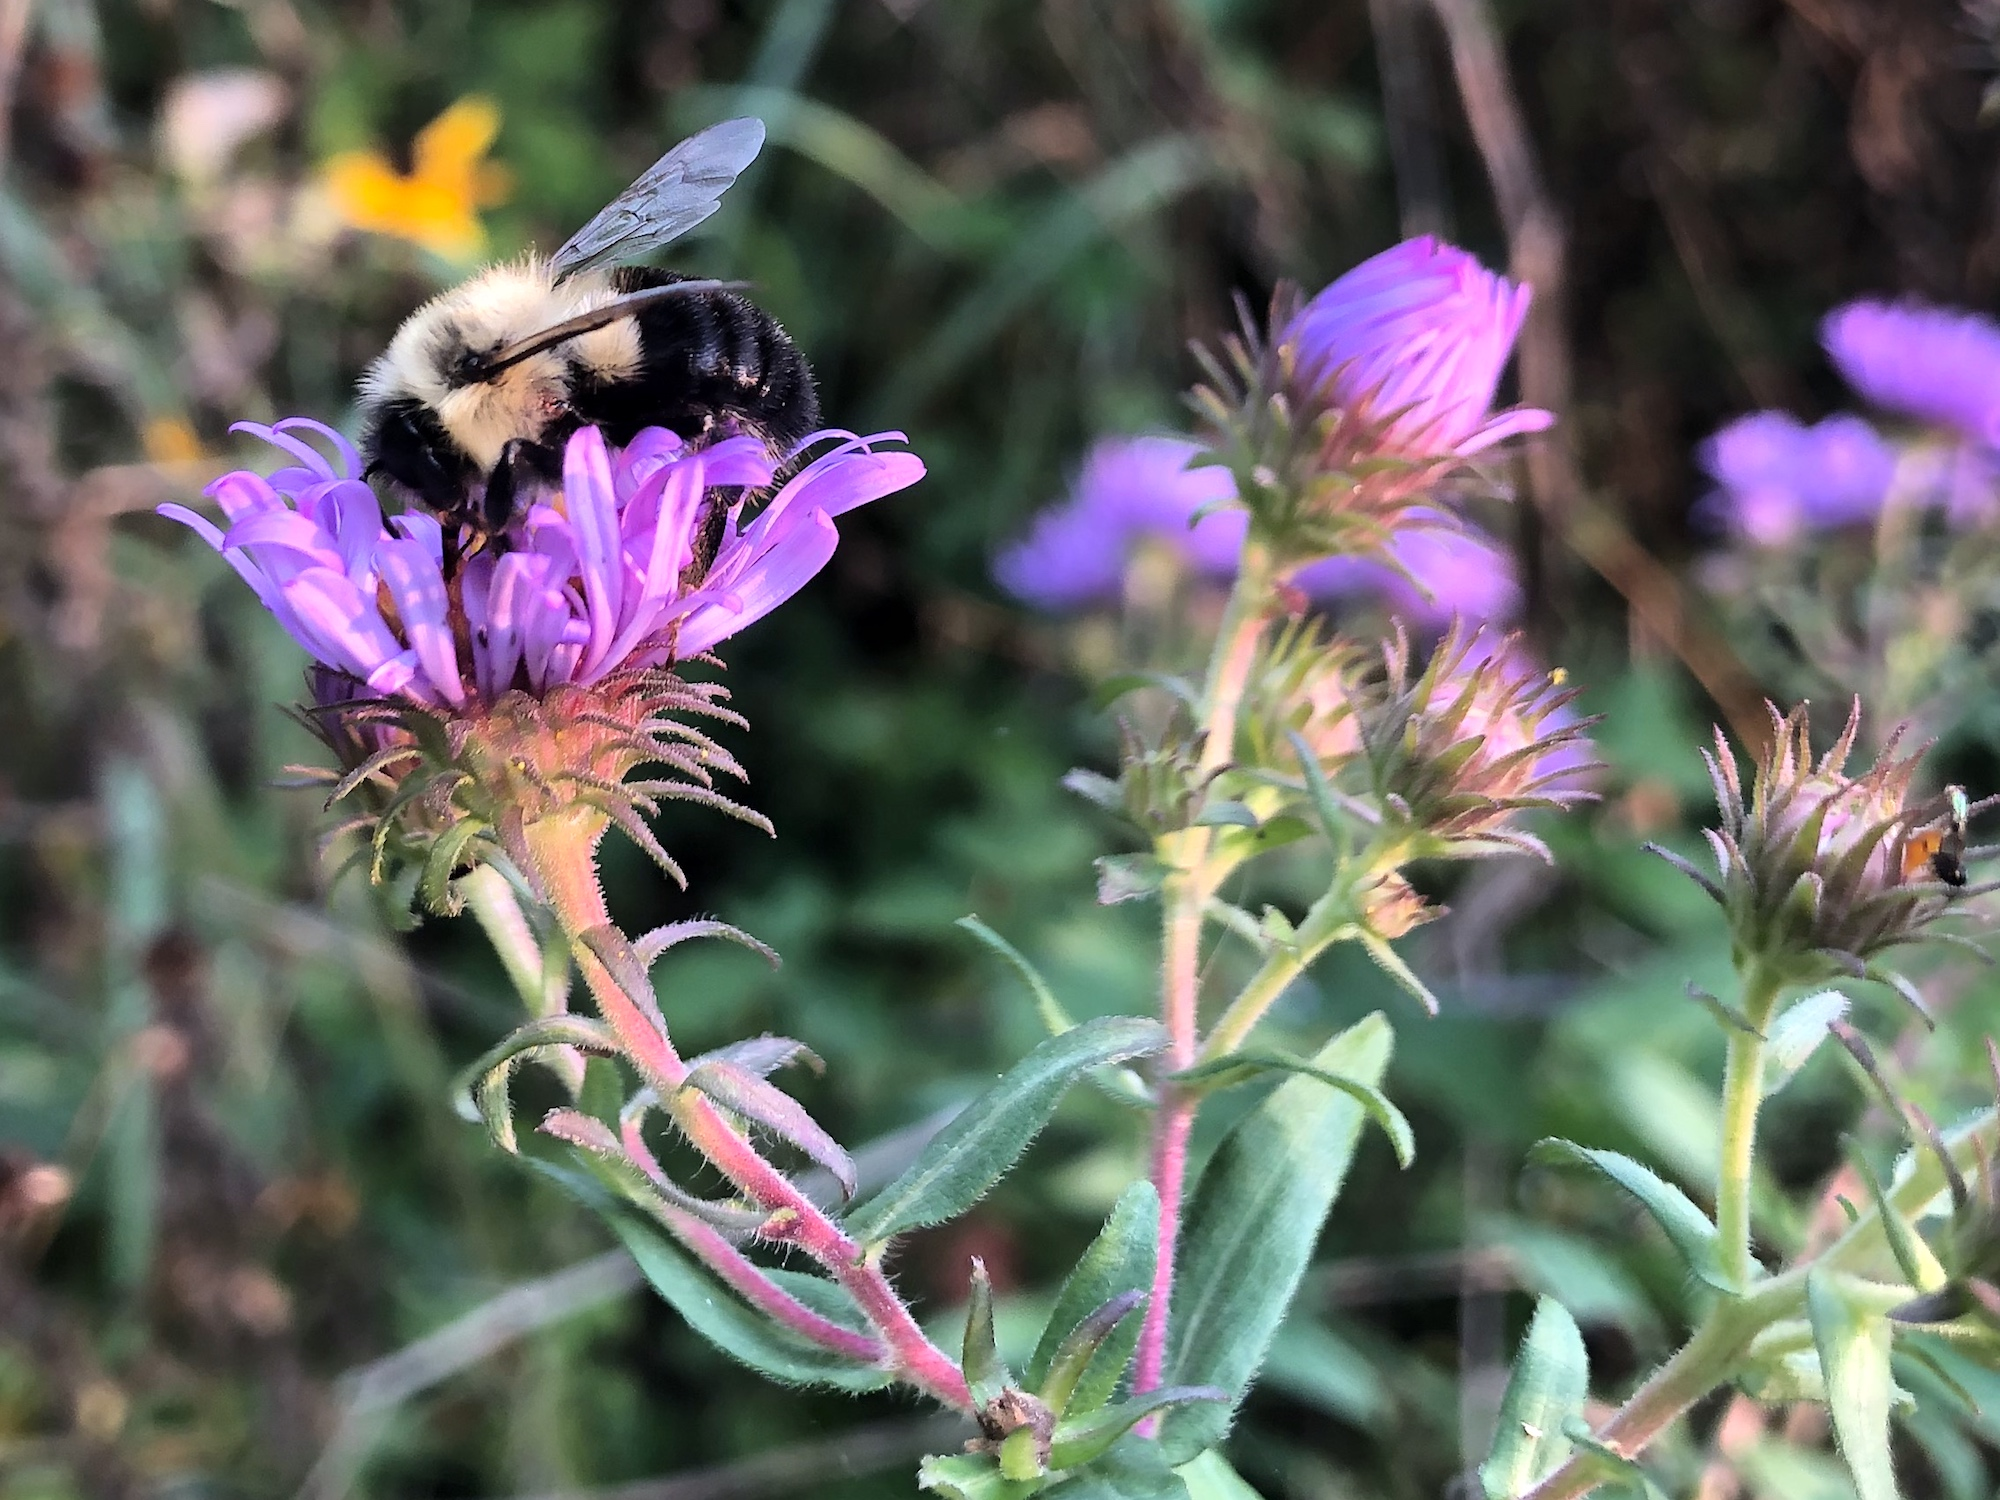 Bumblebee on Aster on September 16, 2020.